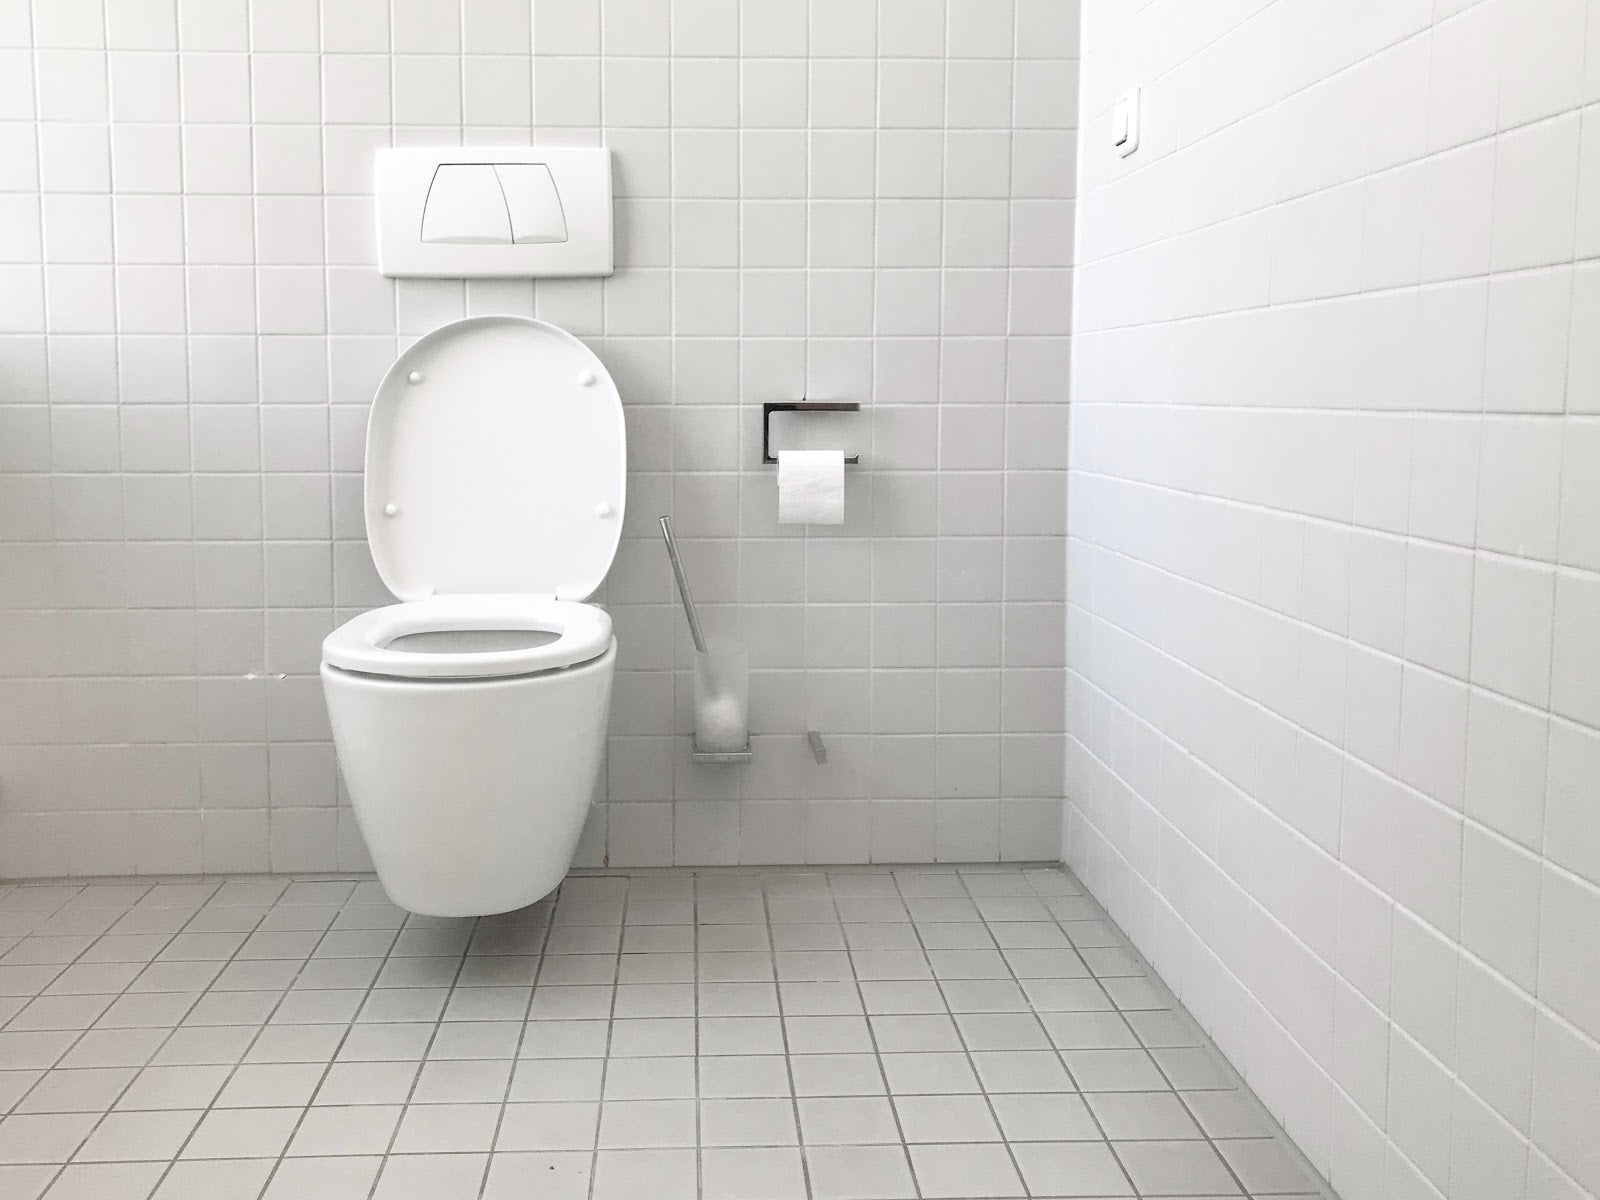 Probiotics for constipation: a toilet in a restroom